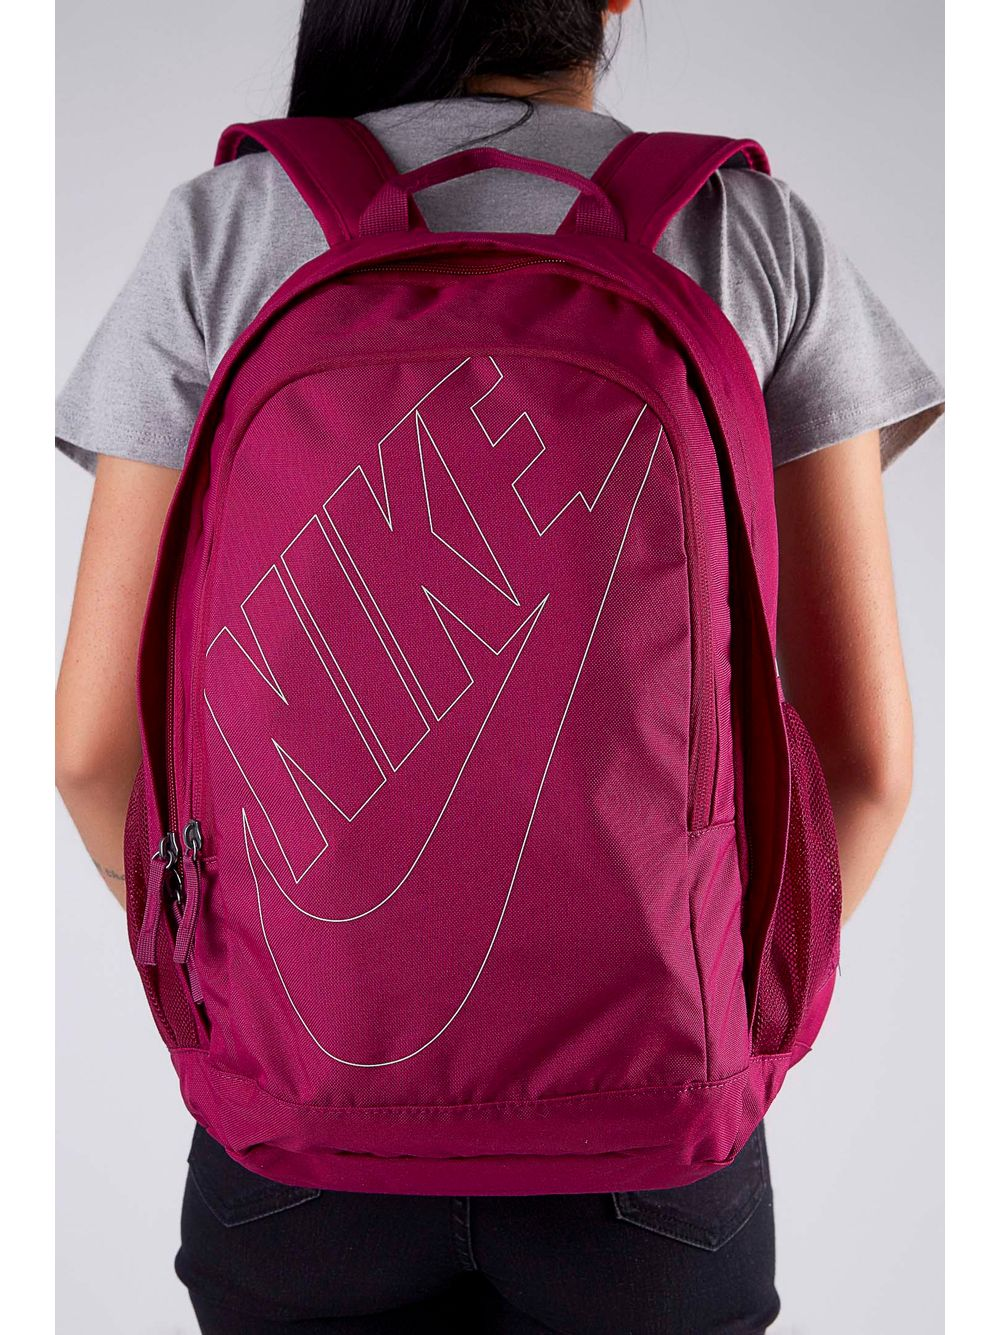 855118169 Previous. Mochila-Nike-Sportswear-Hayward-Futura-2.0-Bordo ...